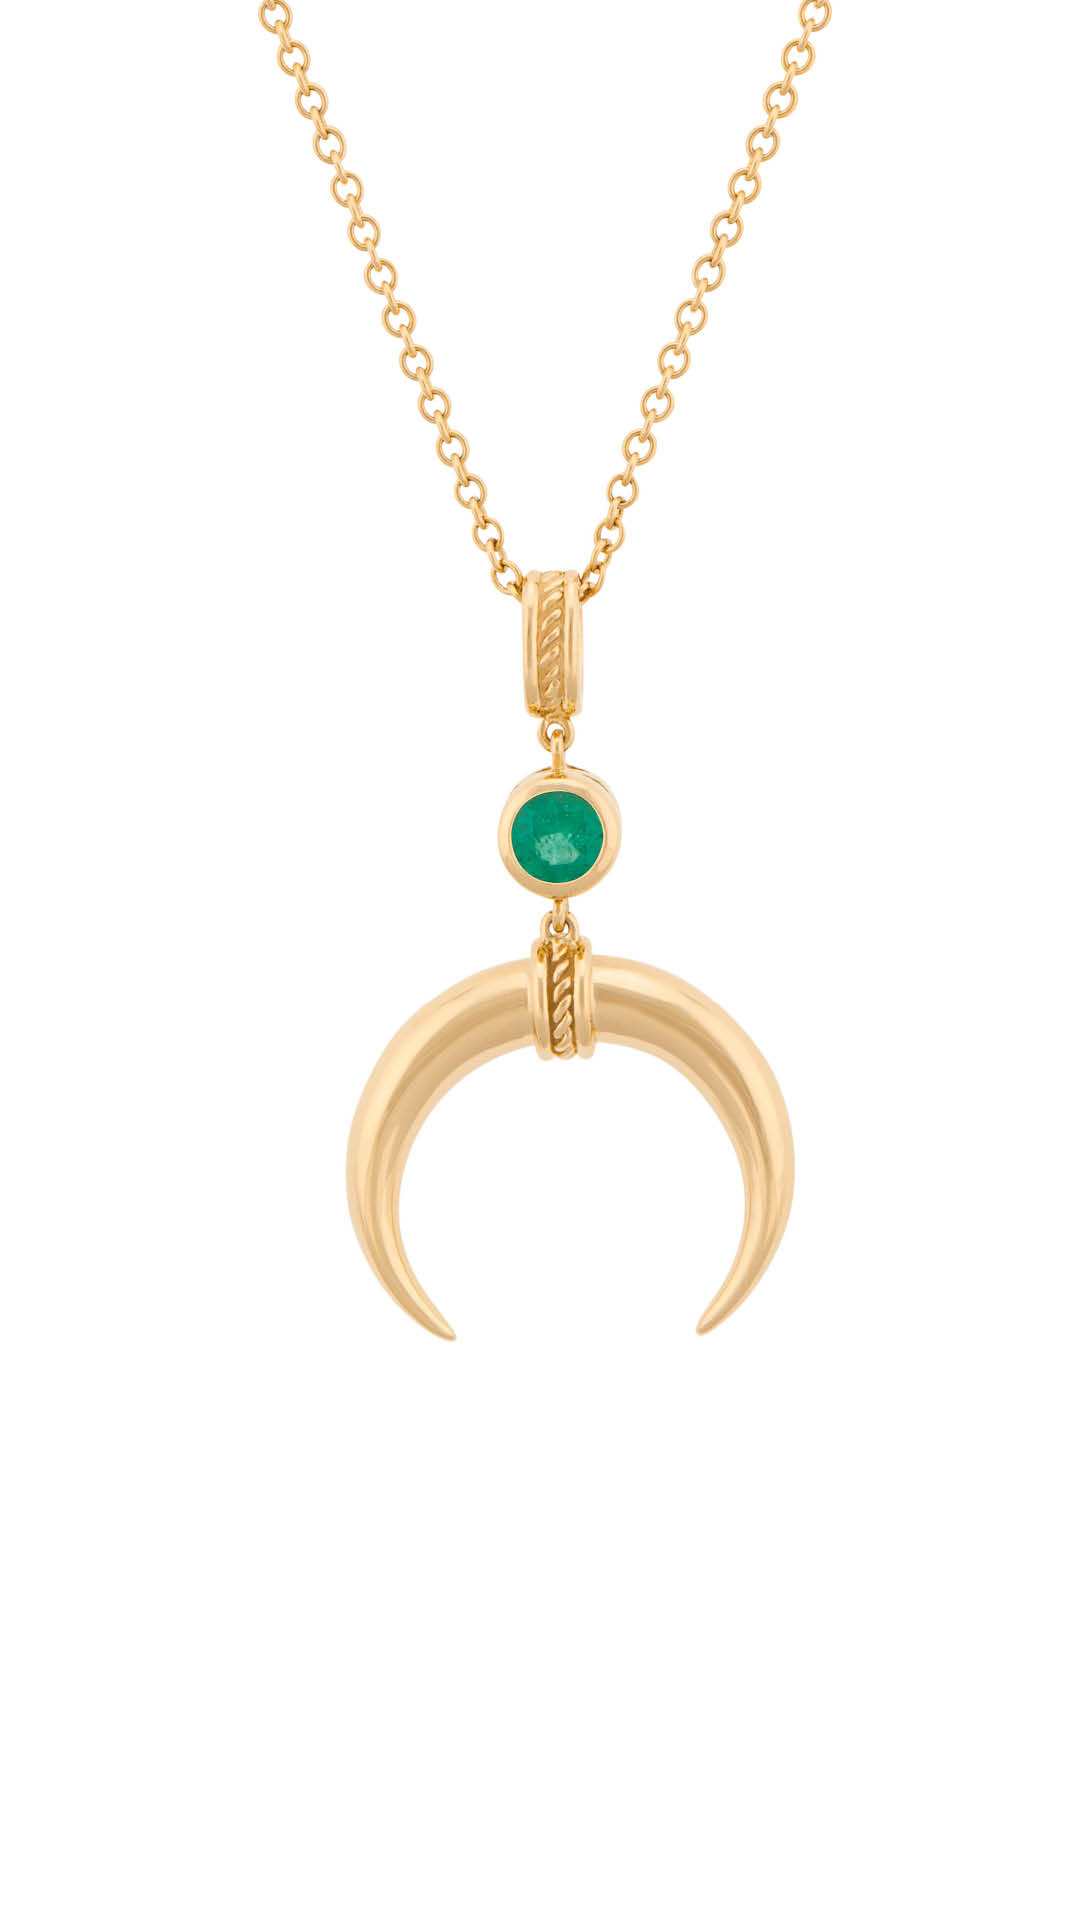 AYA Jewellery Cahora Bassa Necklace